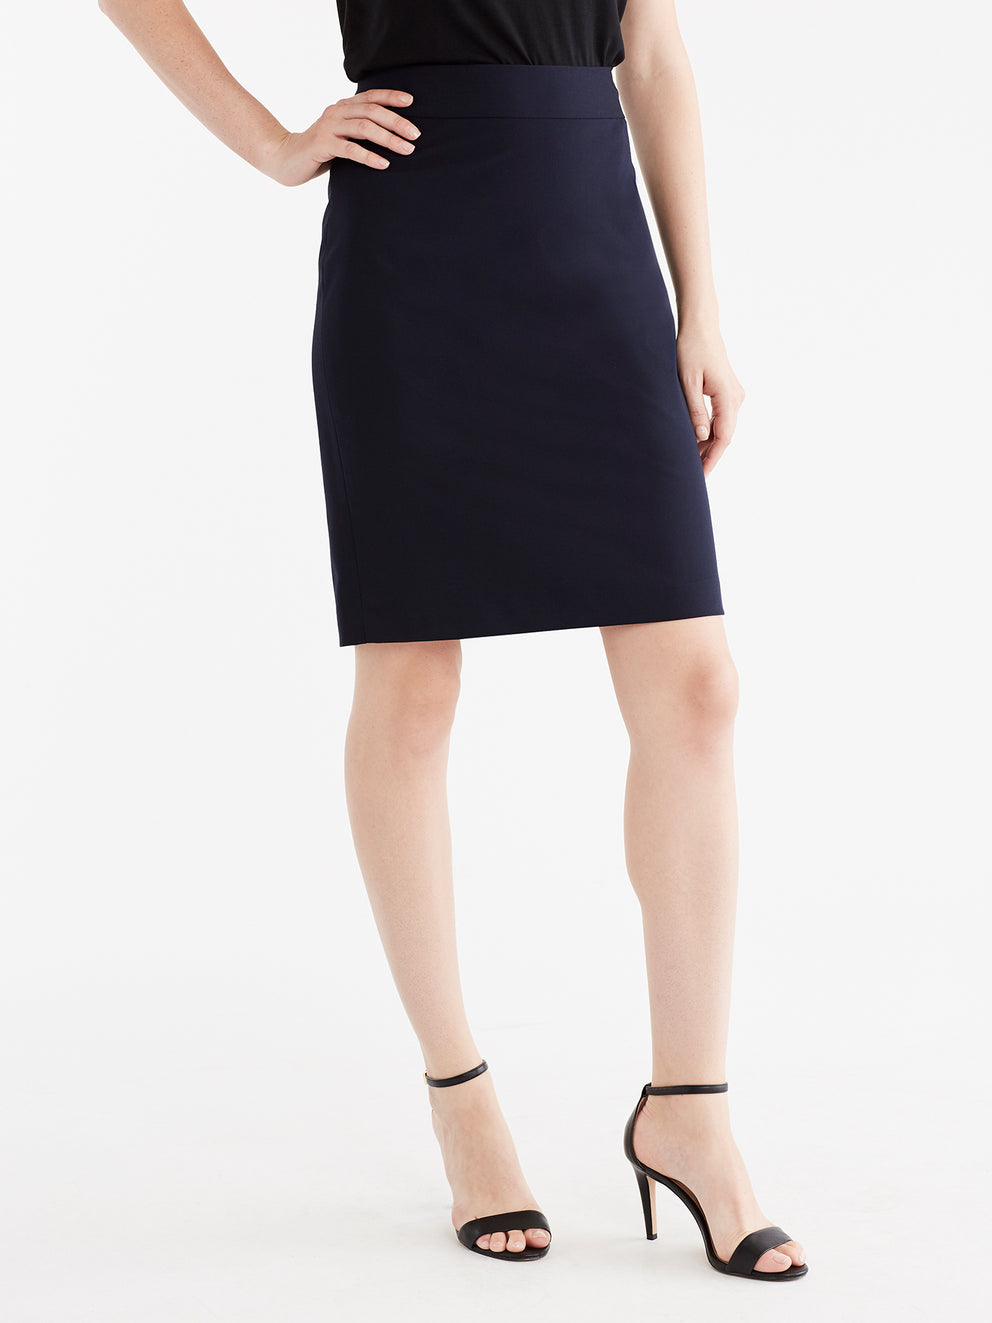 The Jones New York Washable Pencil Skirt in color Navy - Image Position 4